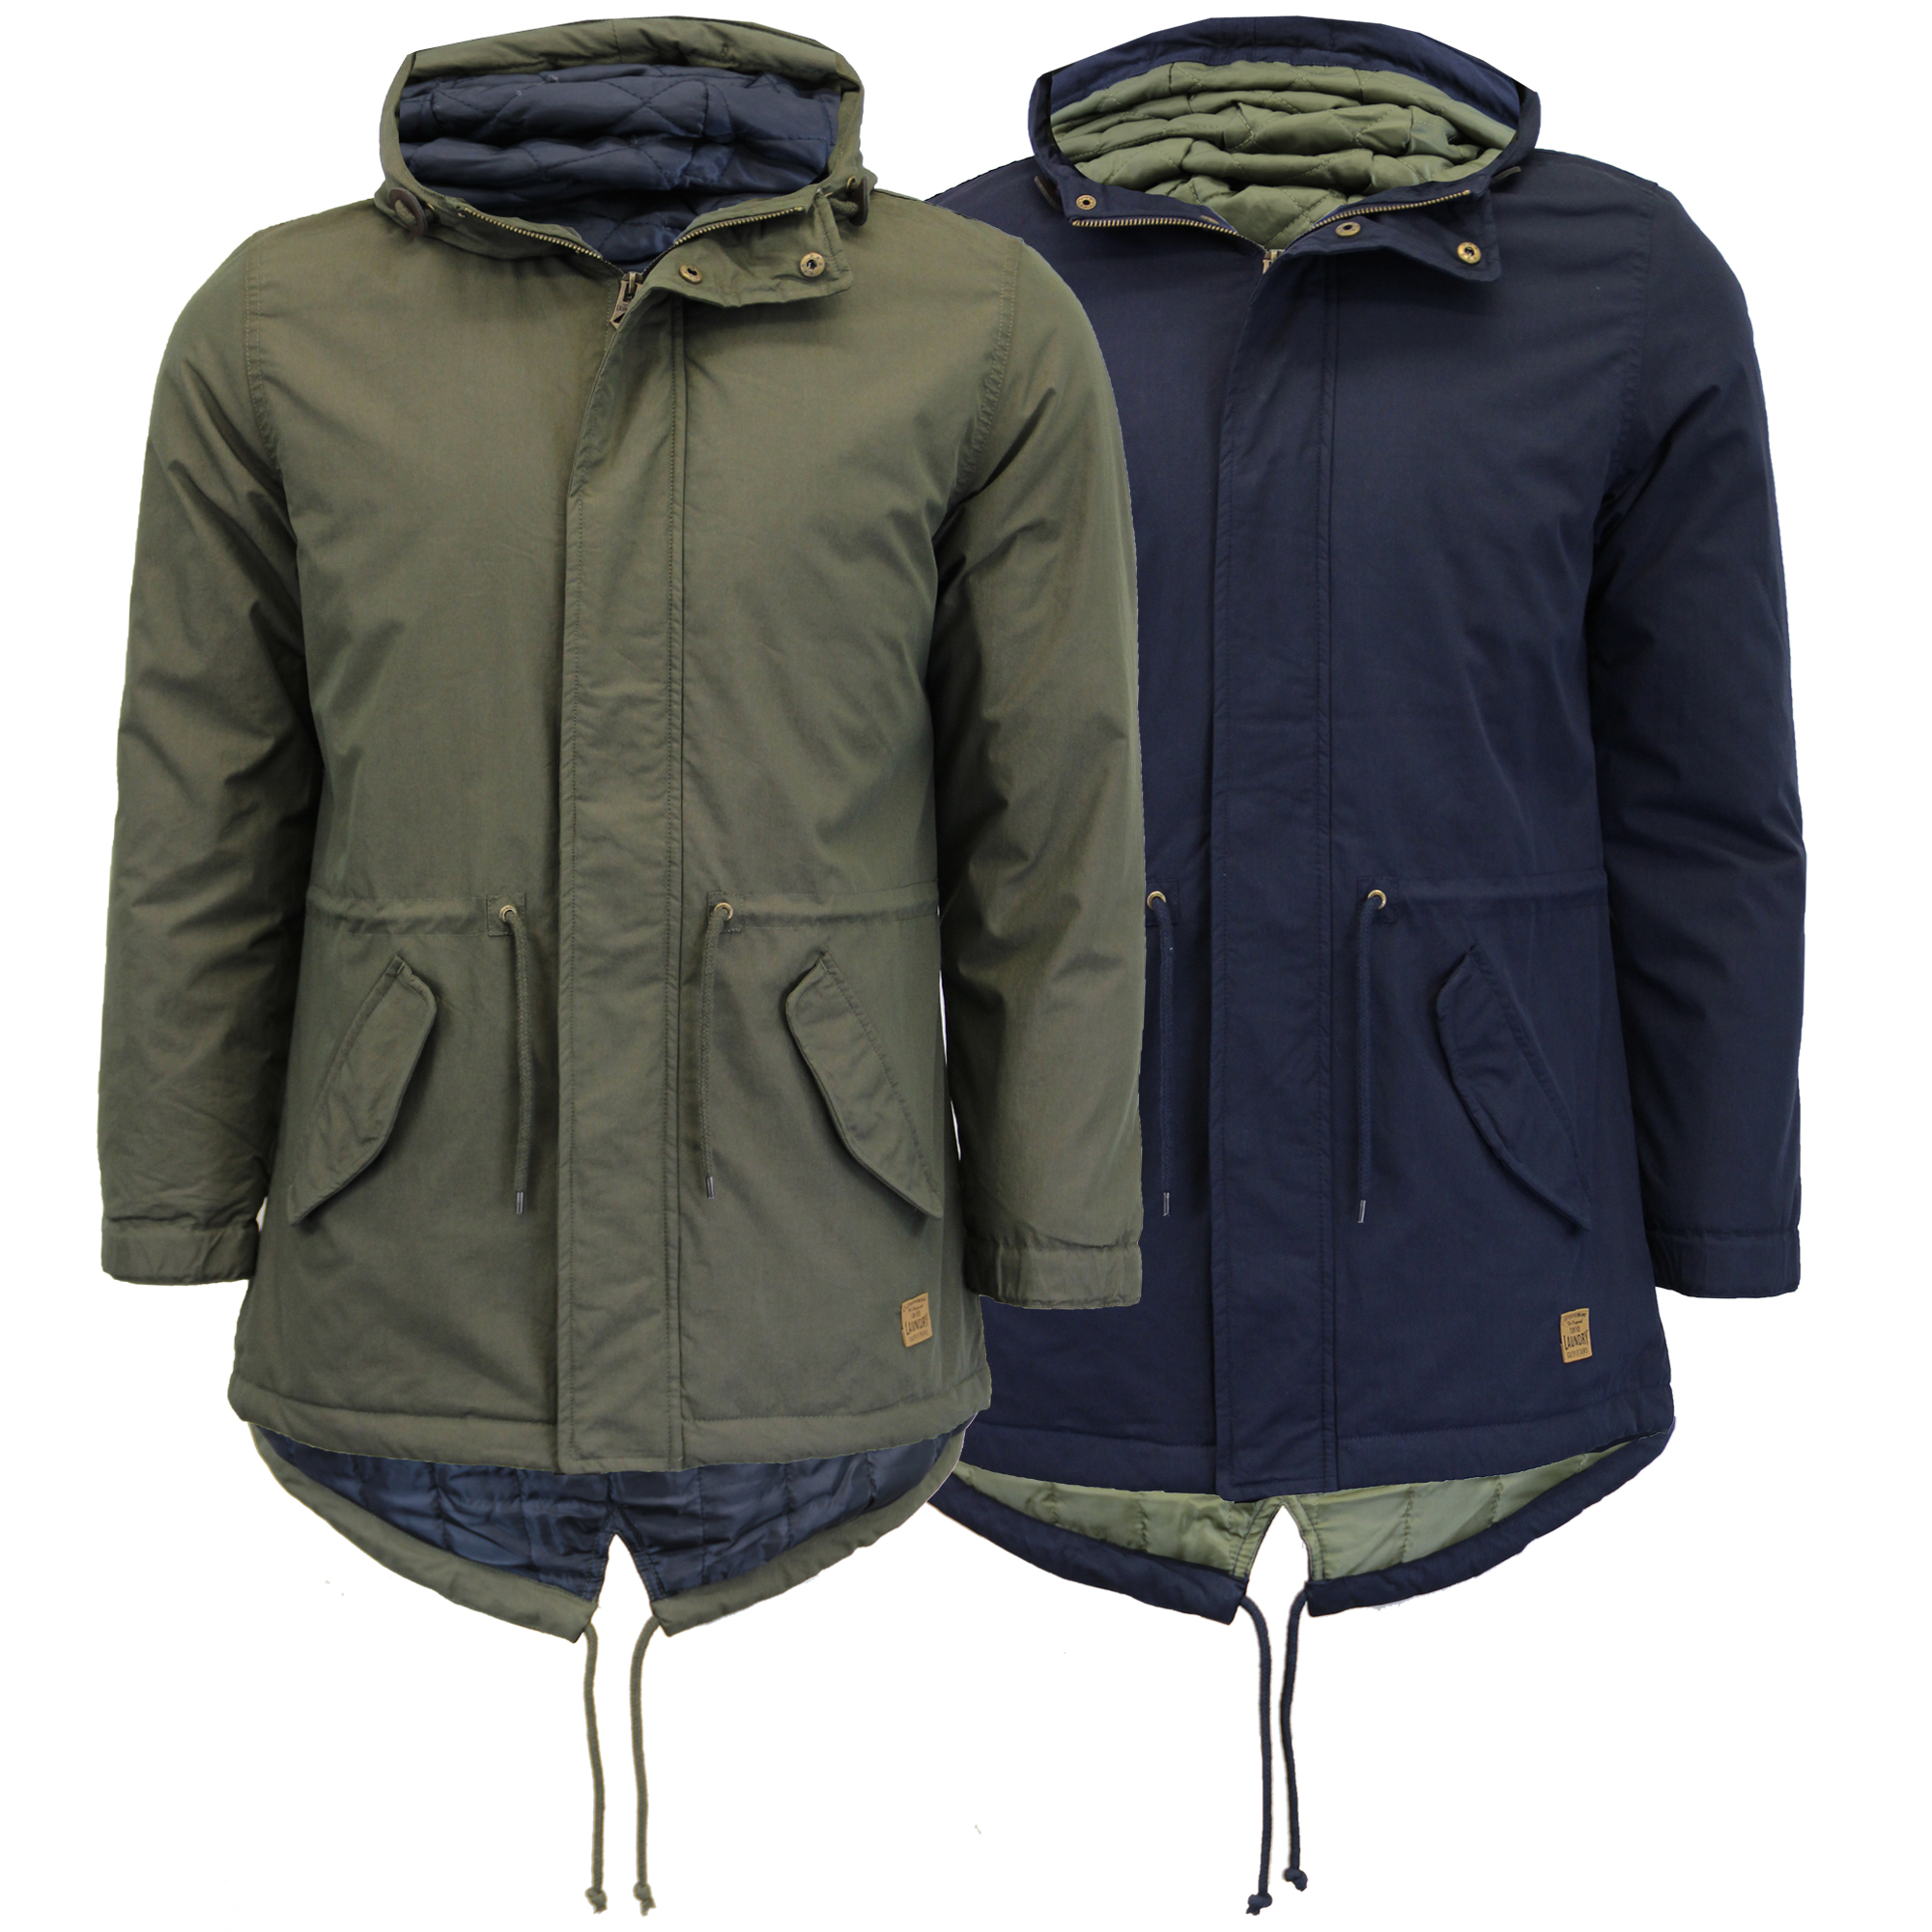 4dcb23d1b8d Mens Jacket Tokyo Laundry Parka Canvas Coat Padded Hooded Fish Tail ...